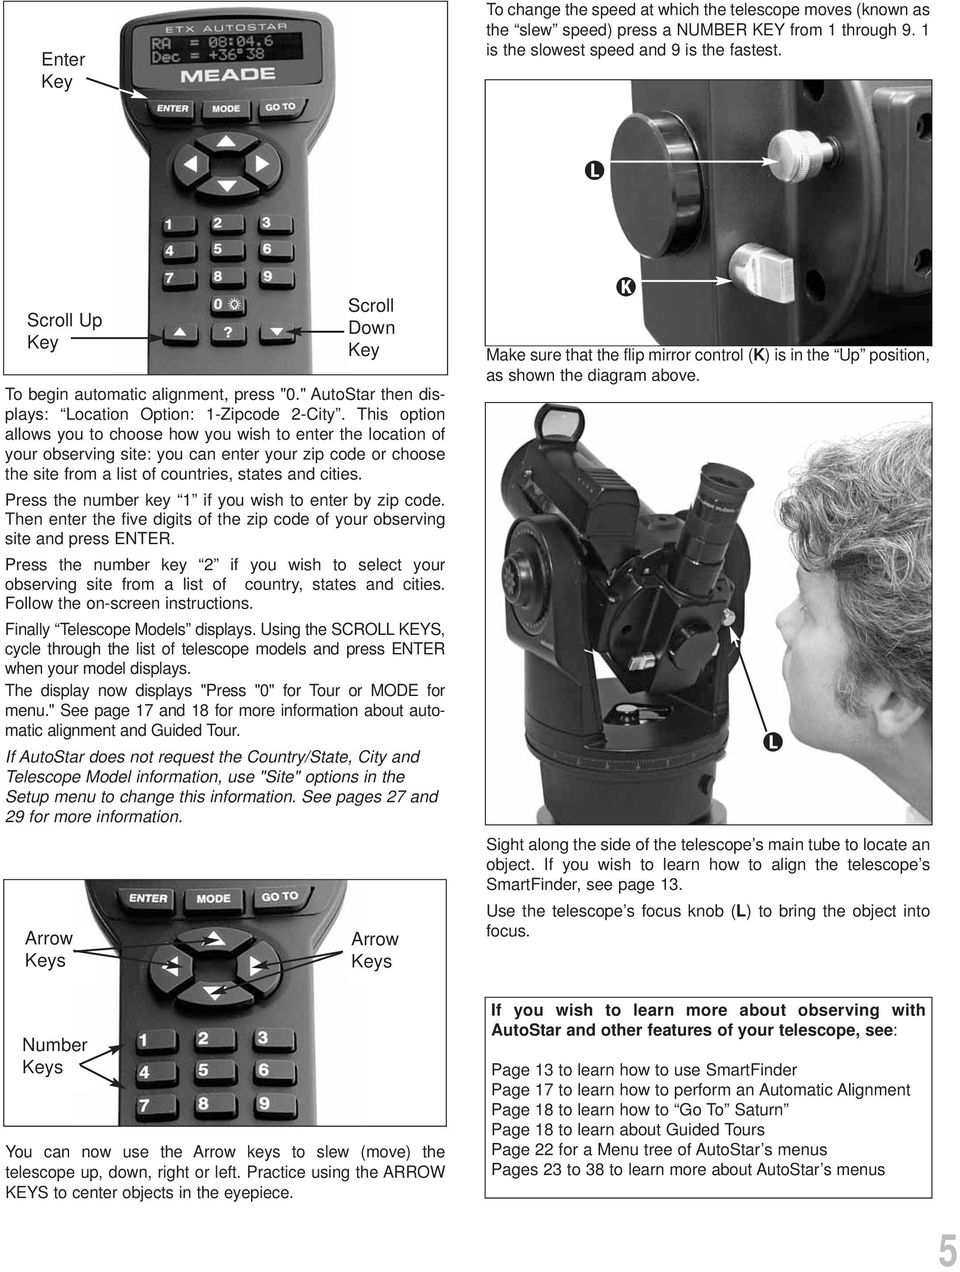 Instruction Manual Etx Premier Edition Telescope Series Autostar To Usb Wiring Diagram This Option Allows You Choose How Wish Enter The Location Of Your Observing